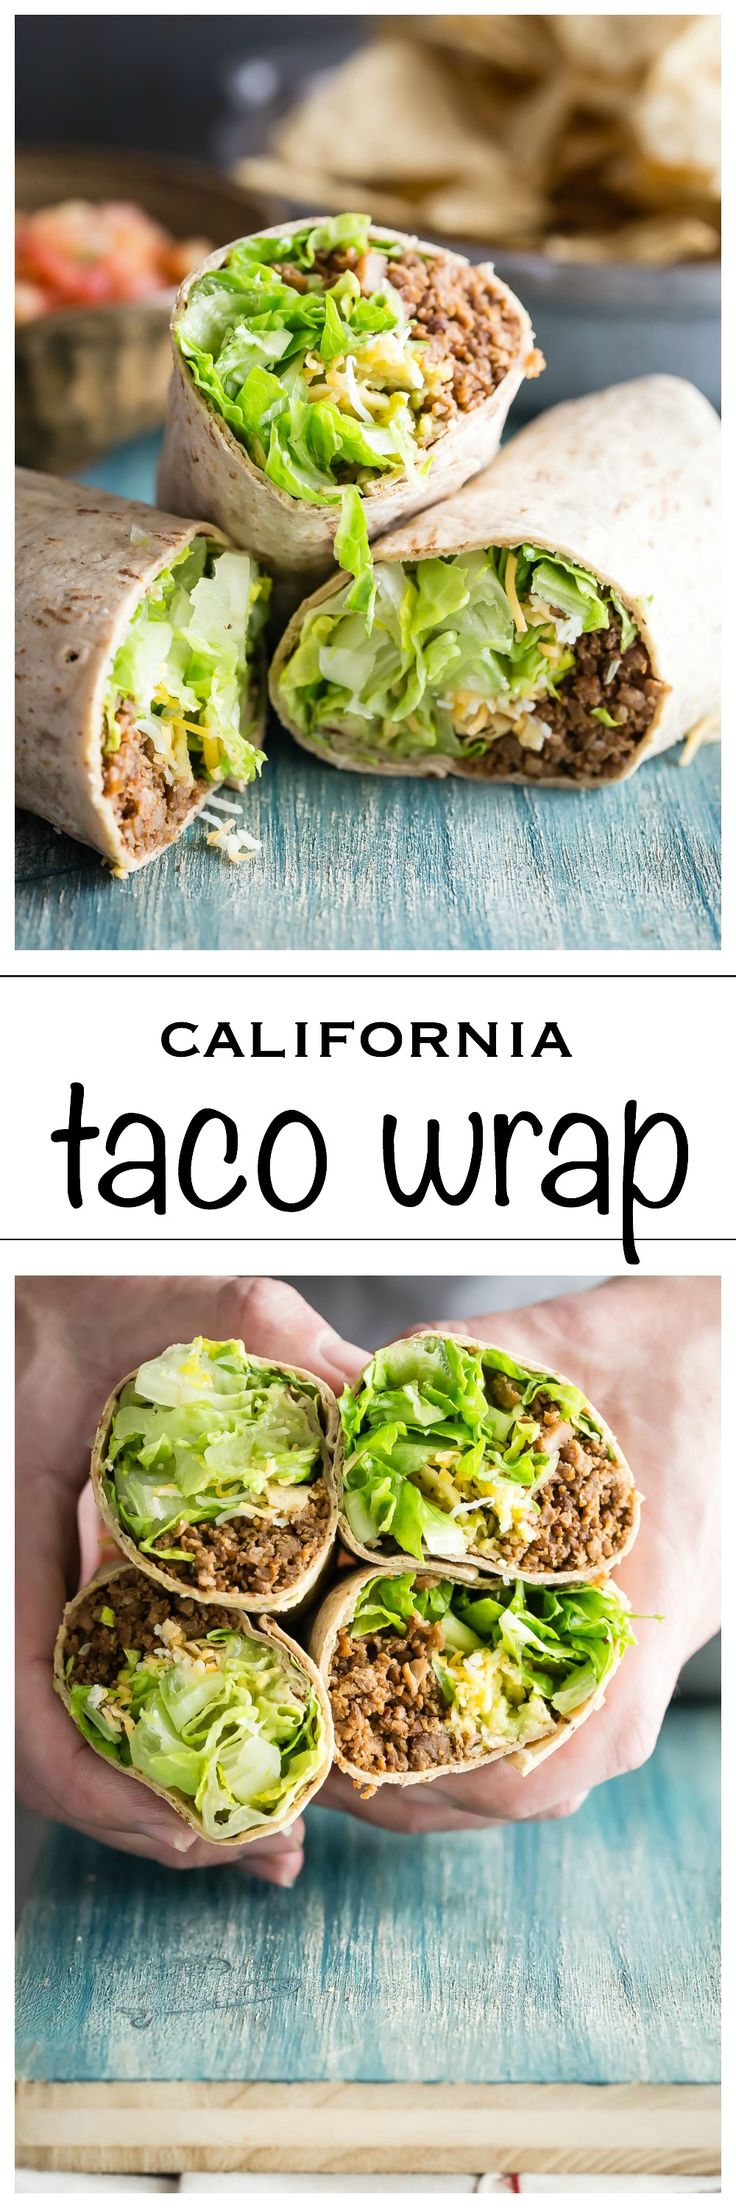 A great new way to eat your homemade tacos, in a Flatout Wrap! Packed with ground beef, cheese and all your favorite taco fixings.